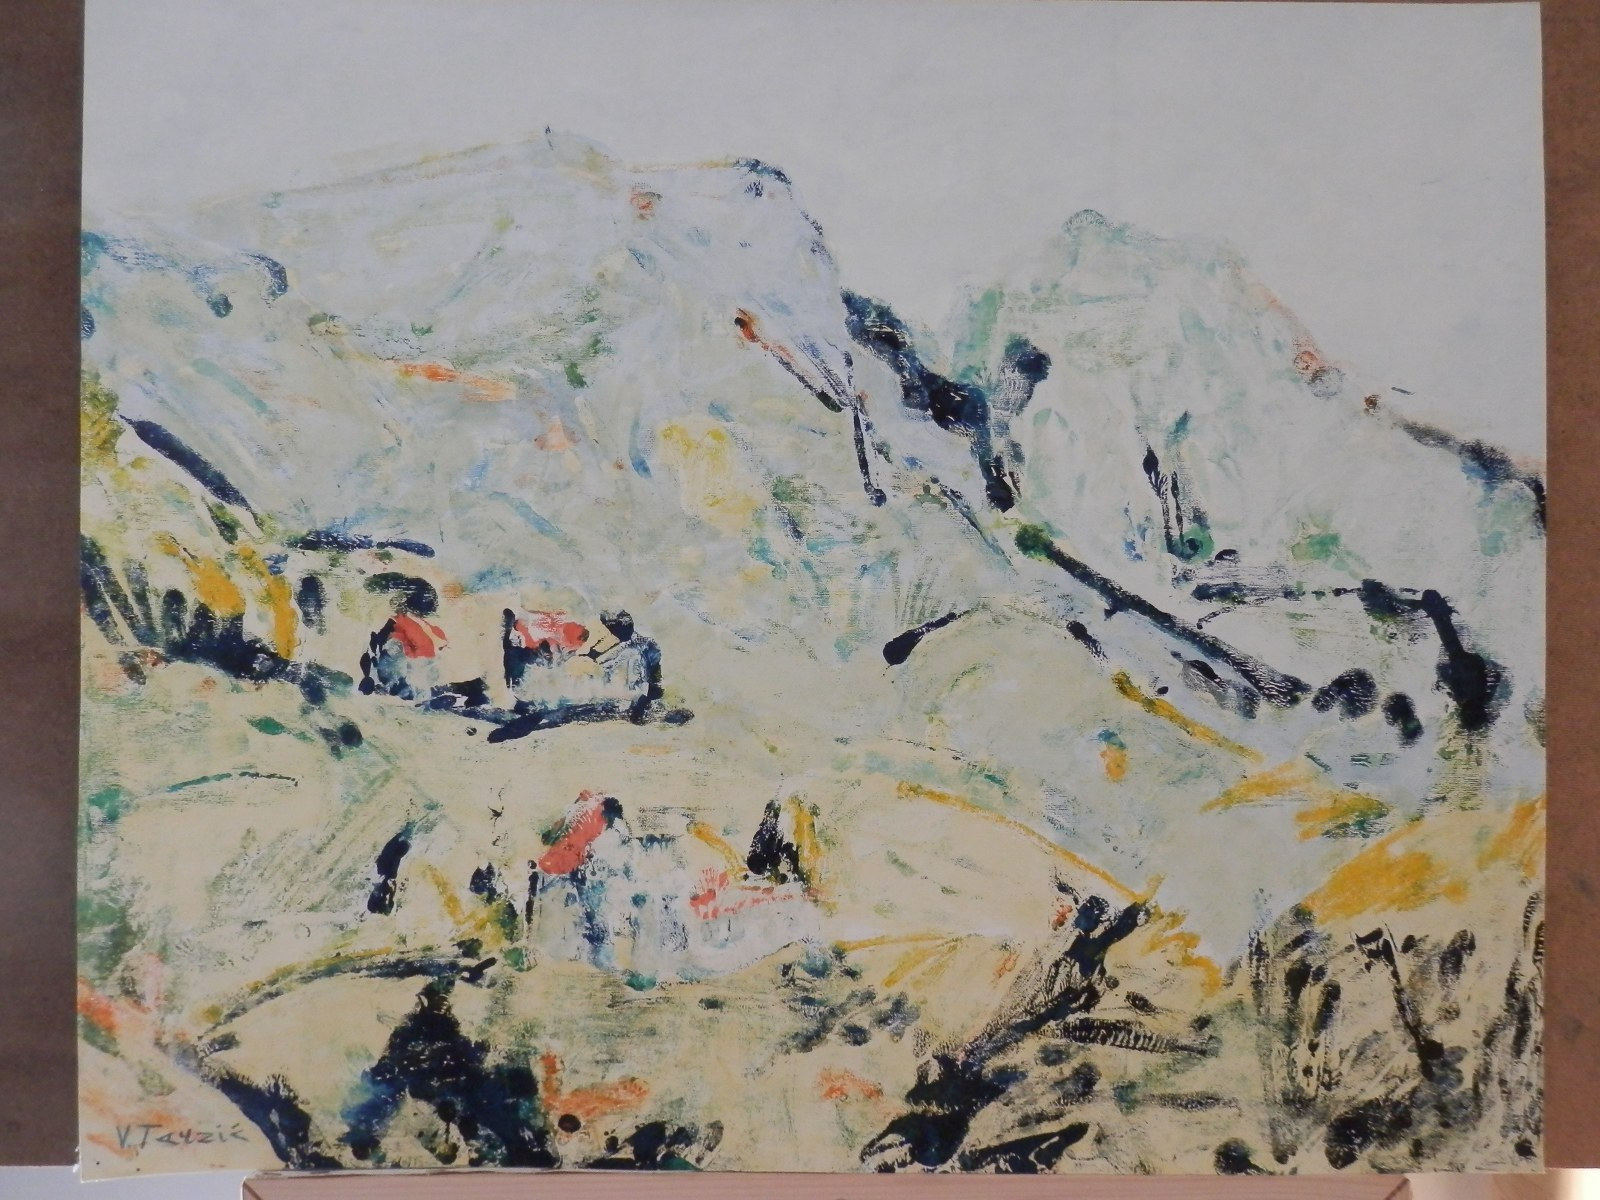 Br. 152 - Ulje i akvarel na papiru - 61x75 <br> 	No. 152 - Oil and aquarel on paper - 61x75